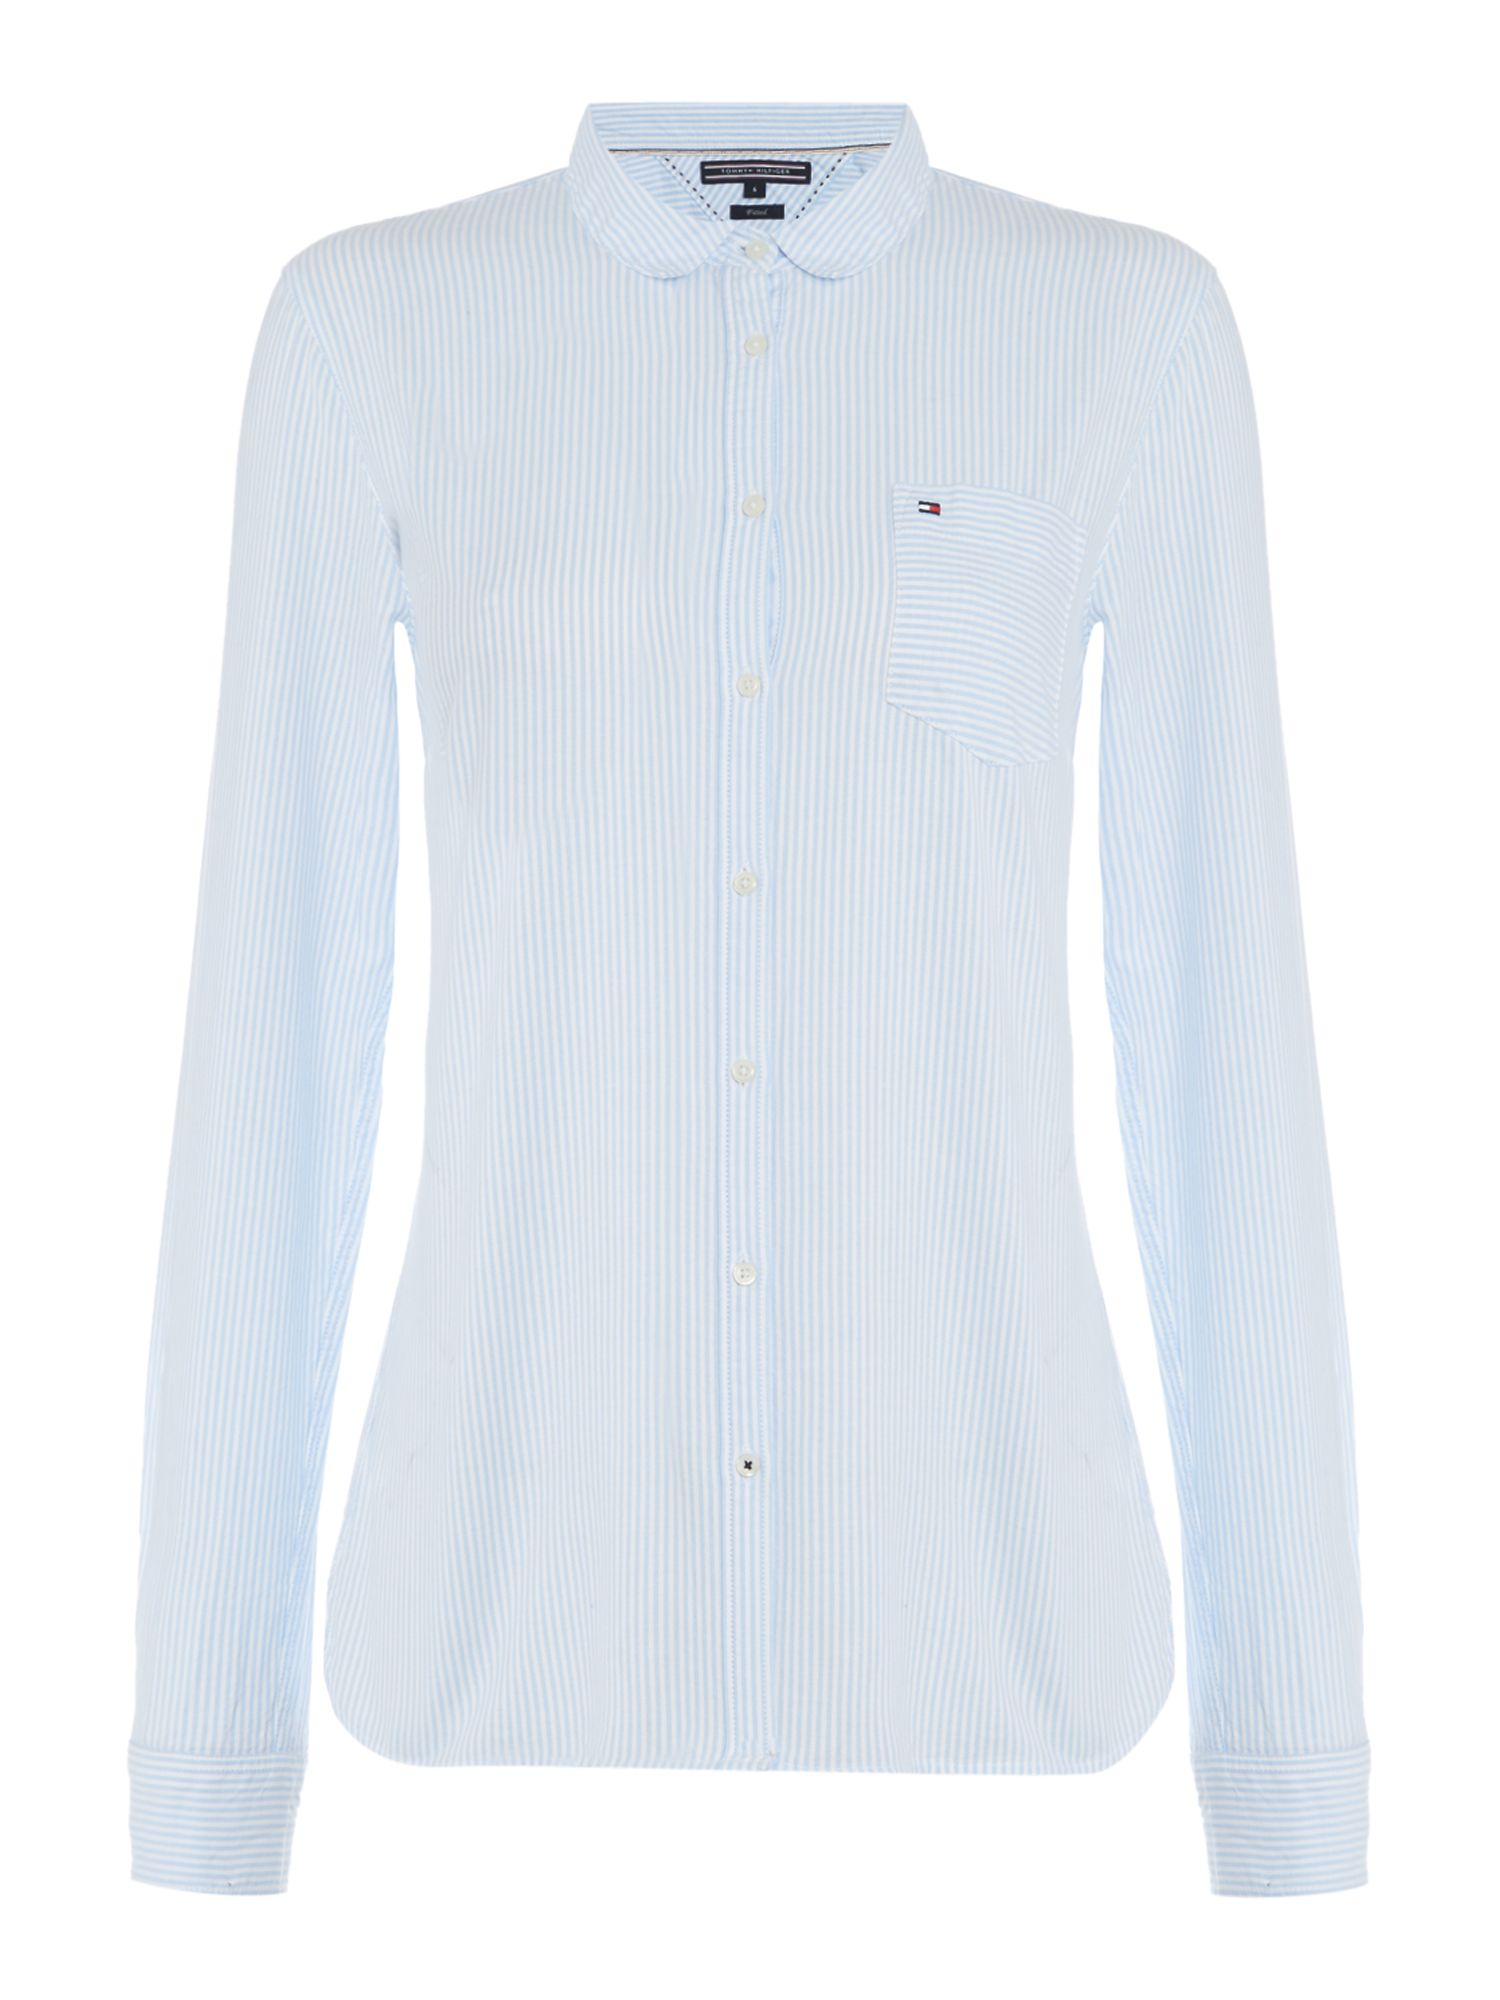 Tommy Hilfiger Sithaca Stripe Shirt, Light Blue